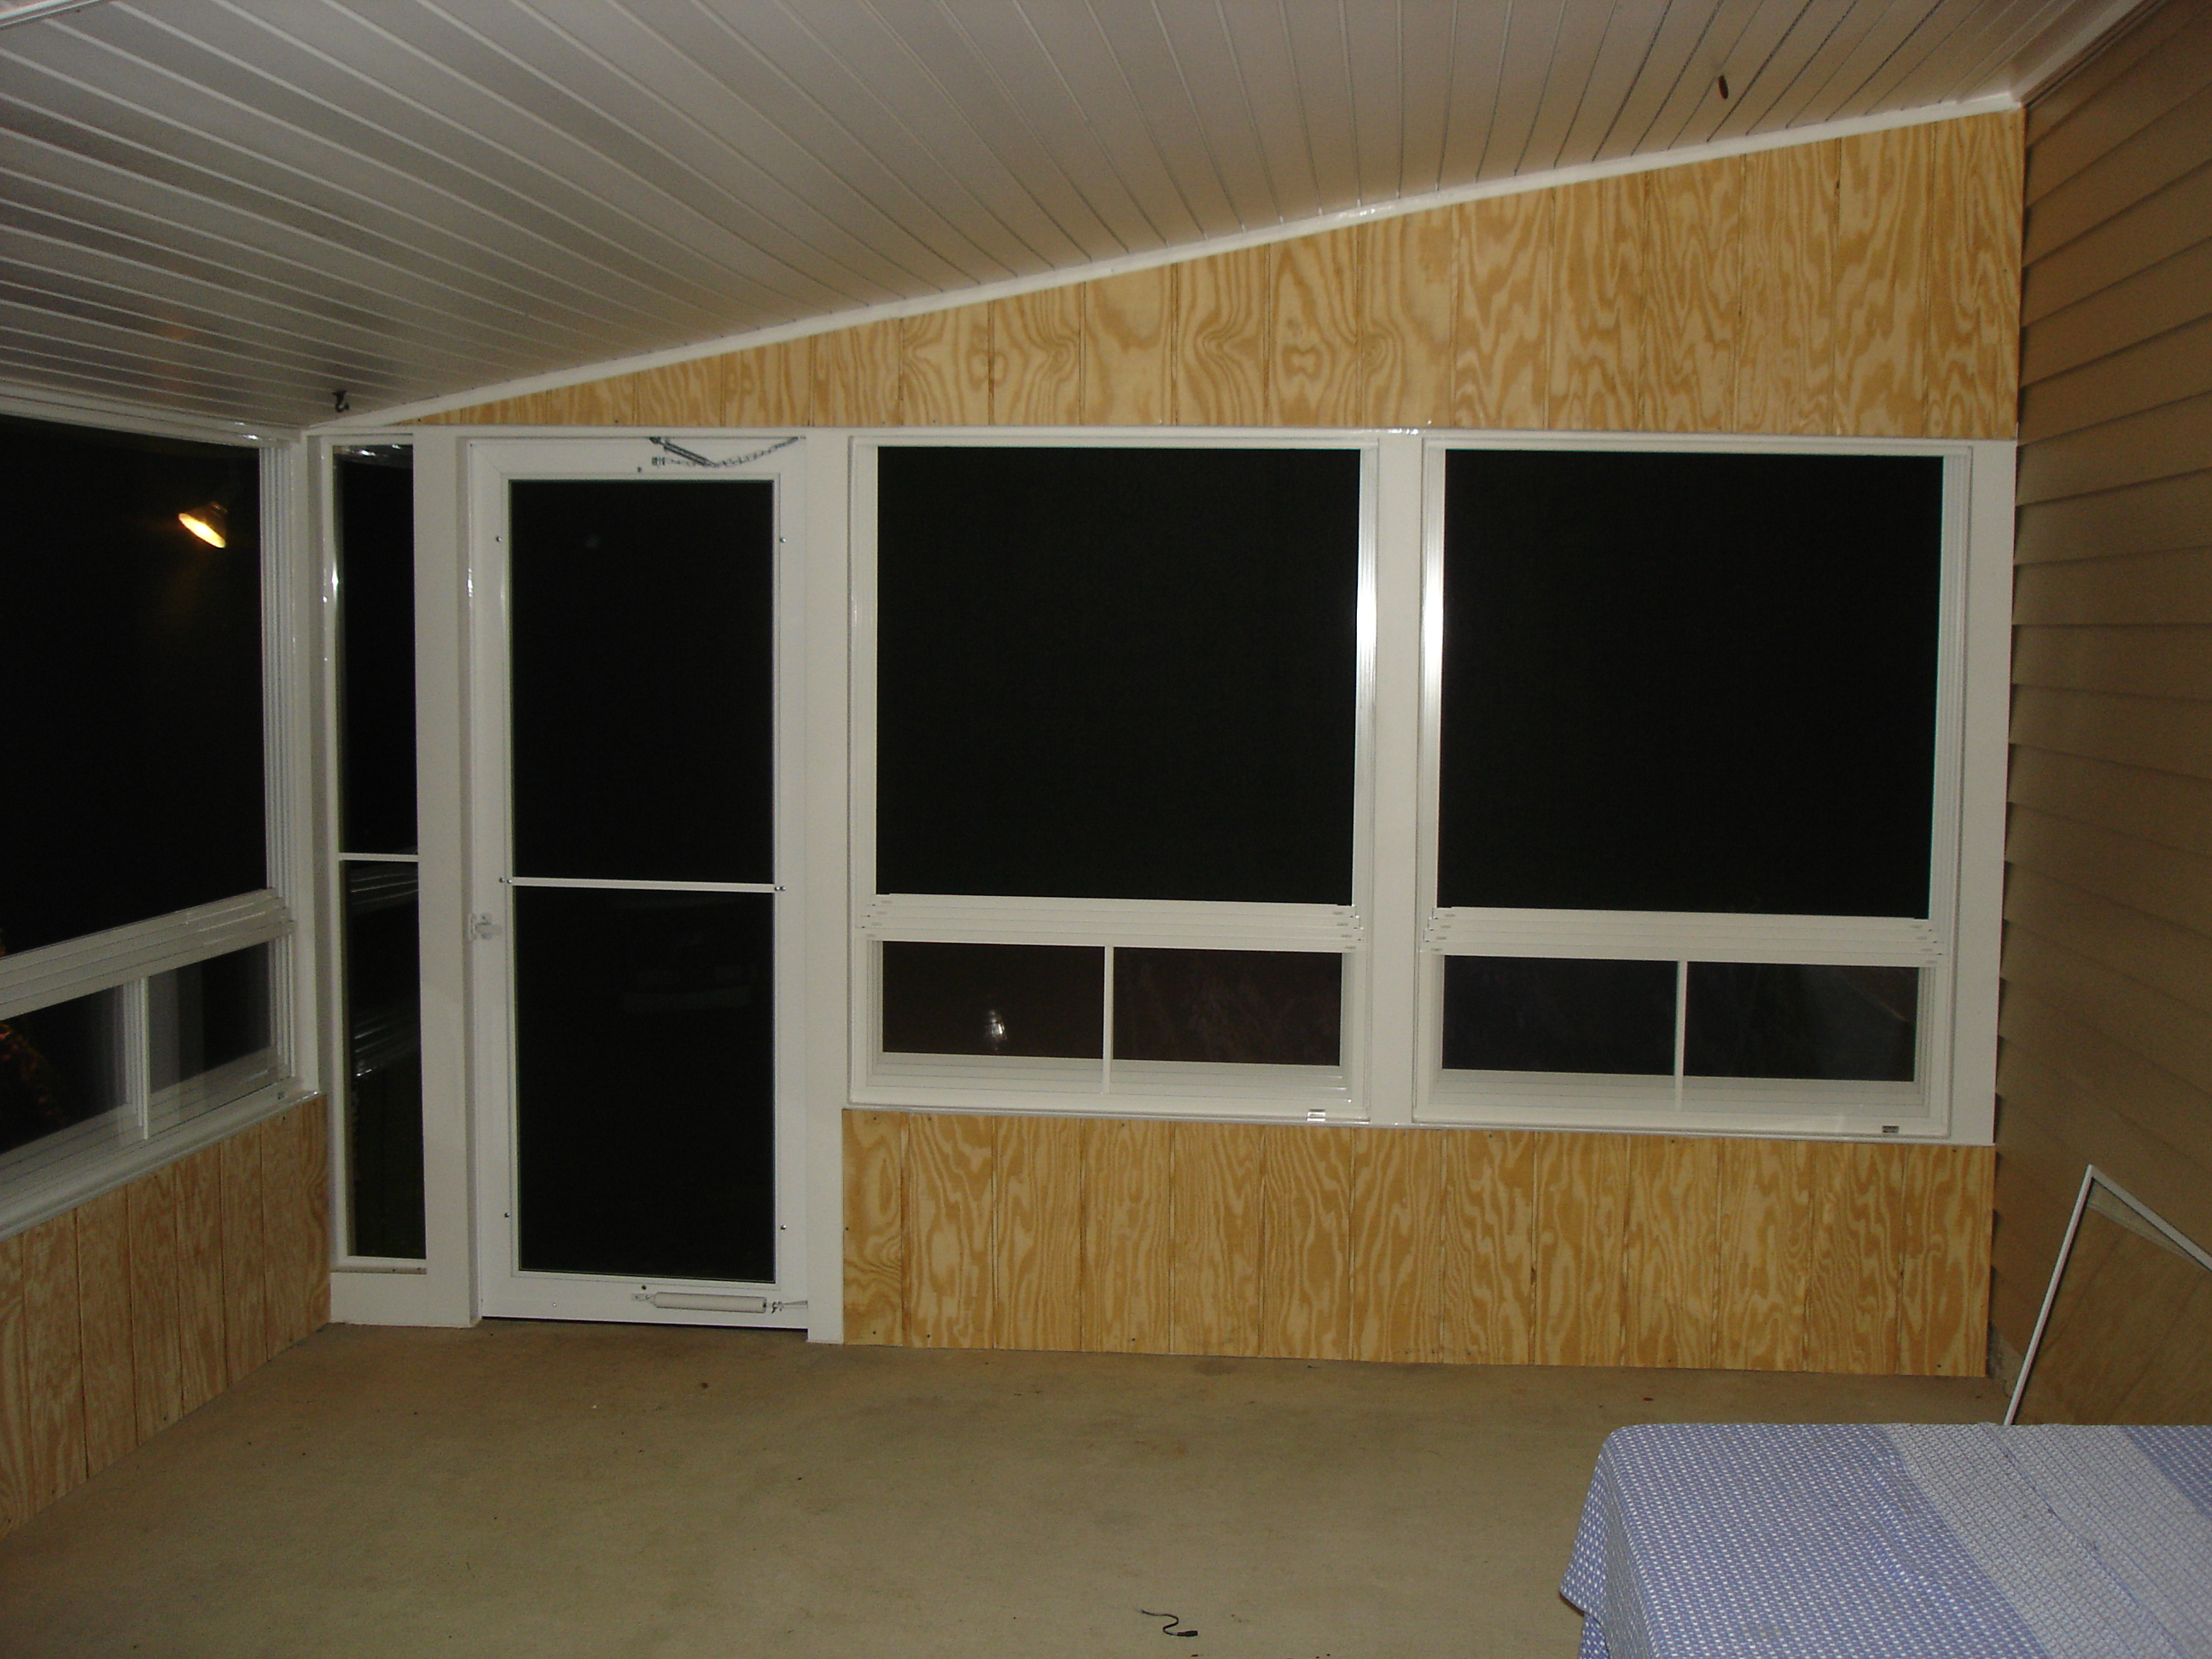 completed interior at night with storm door